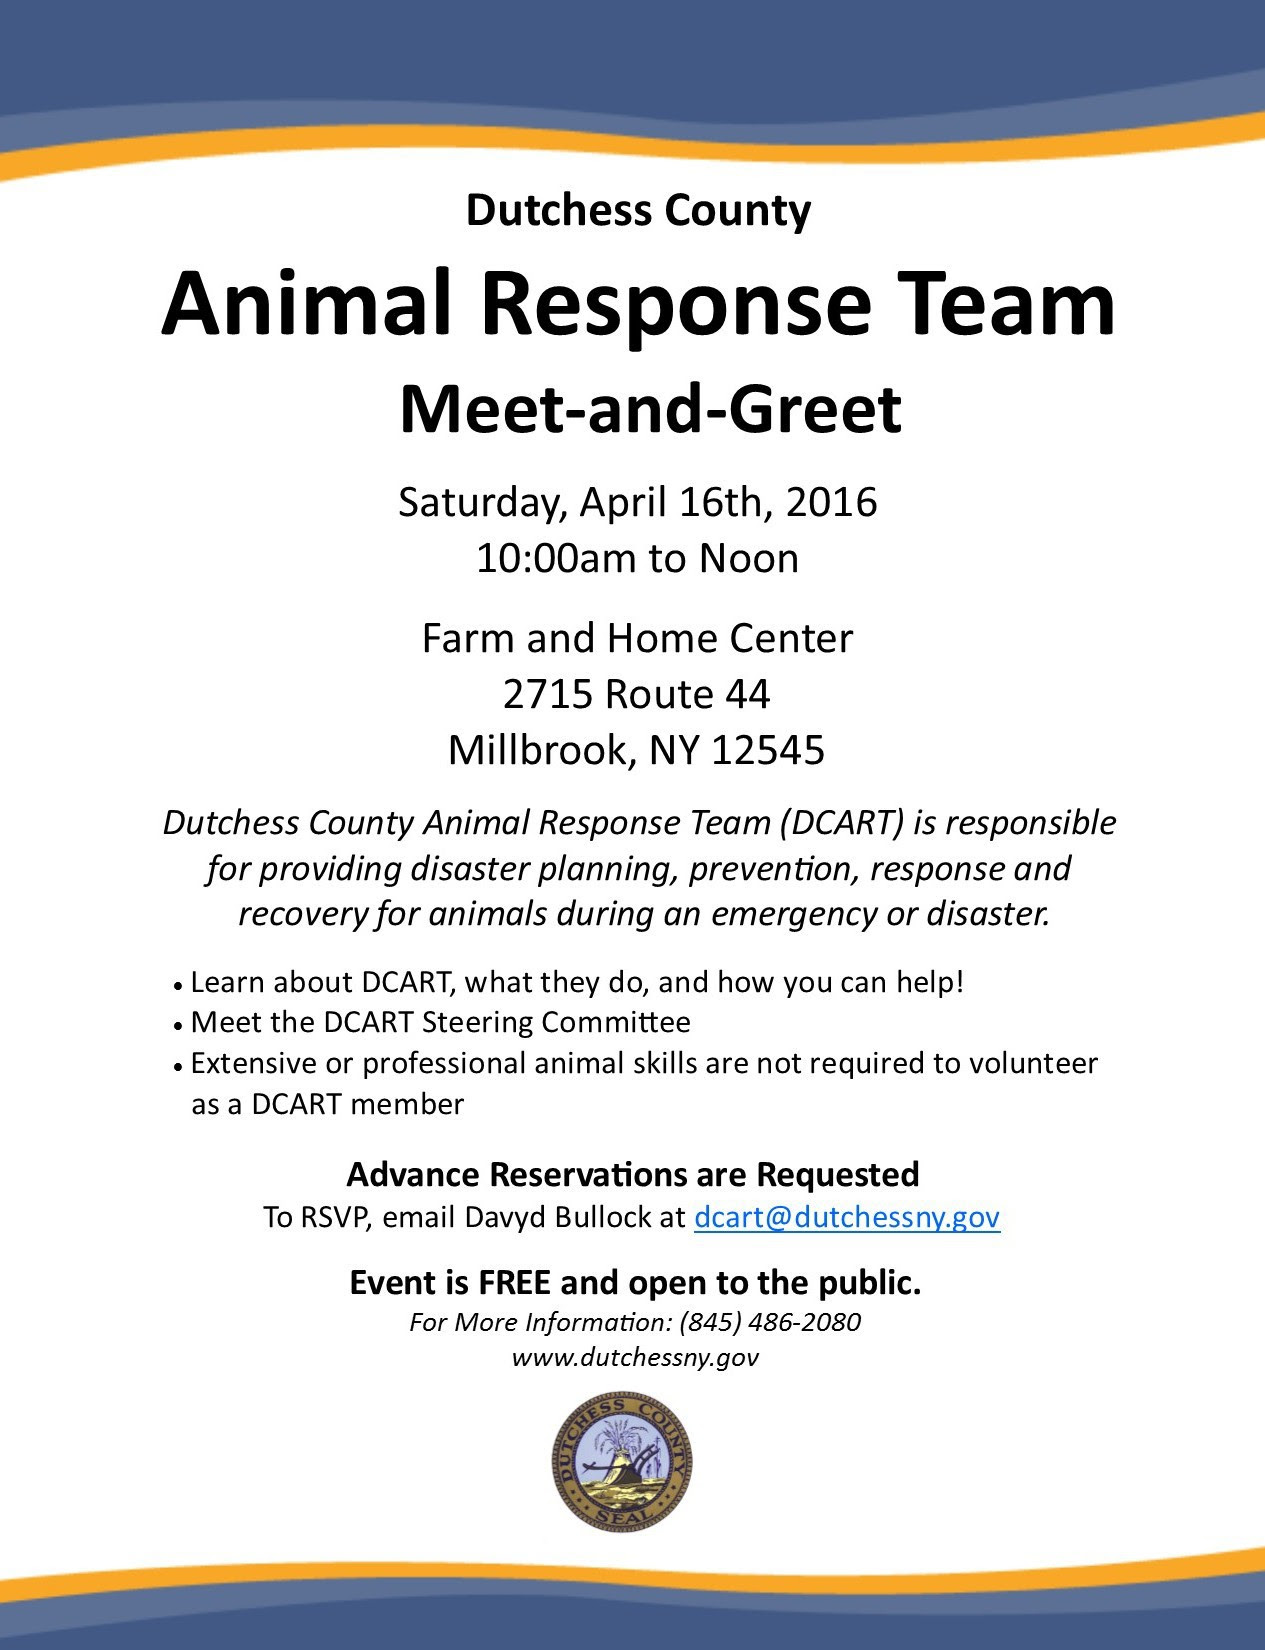 Dutchess County Animal Response Team To Host Meet And Greet This